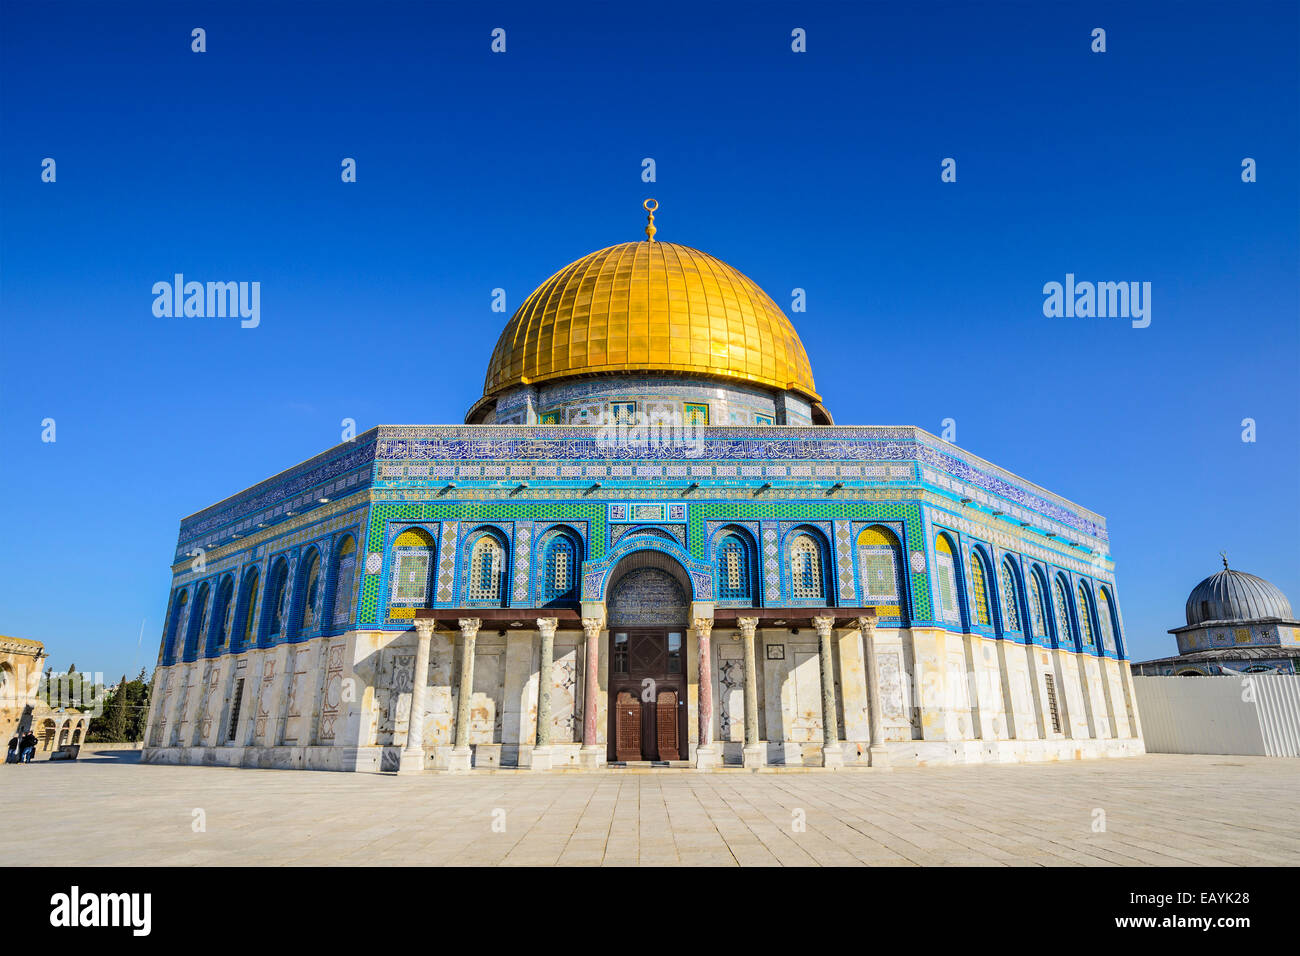 Jerusalem, Israel at the Dome of the Rock, one of the oldest works of Islamic Architecture. - Stock Image